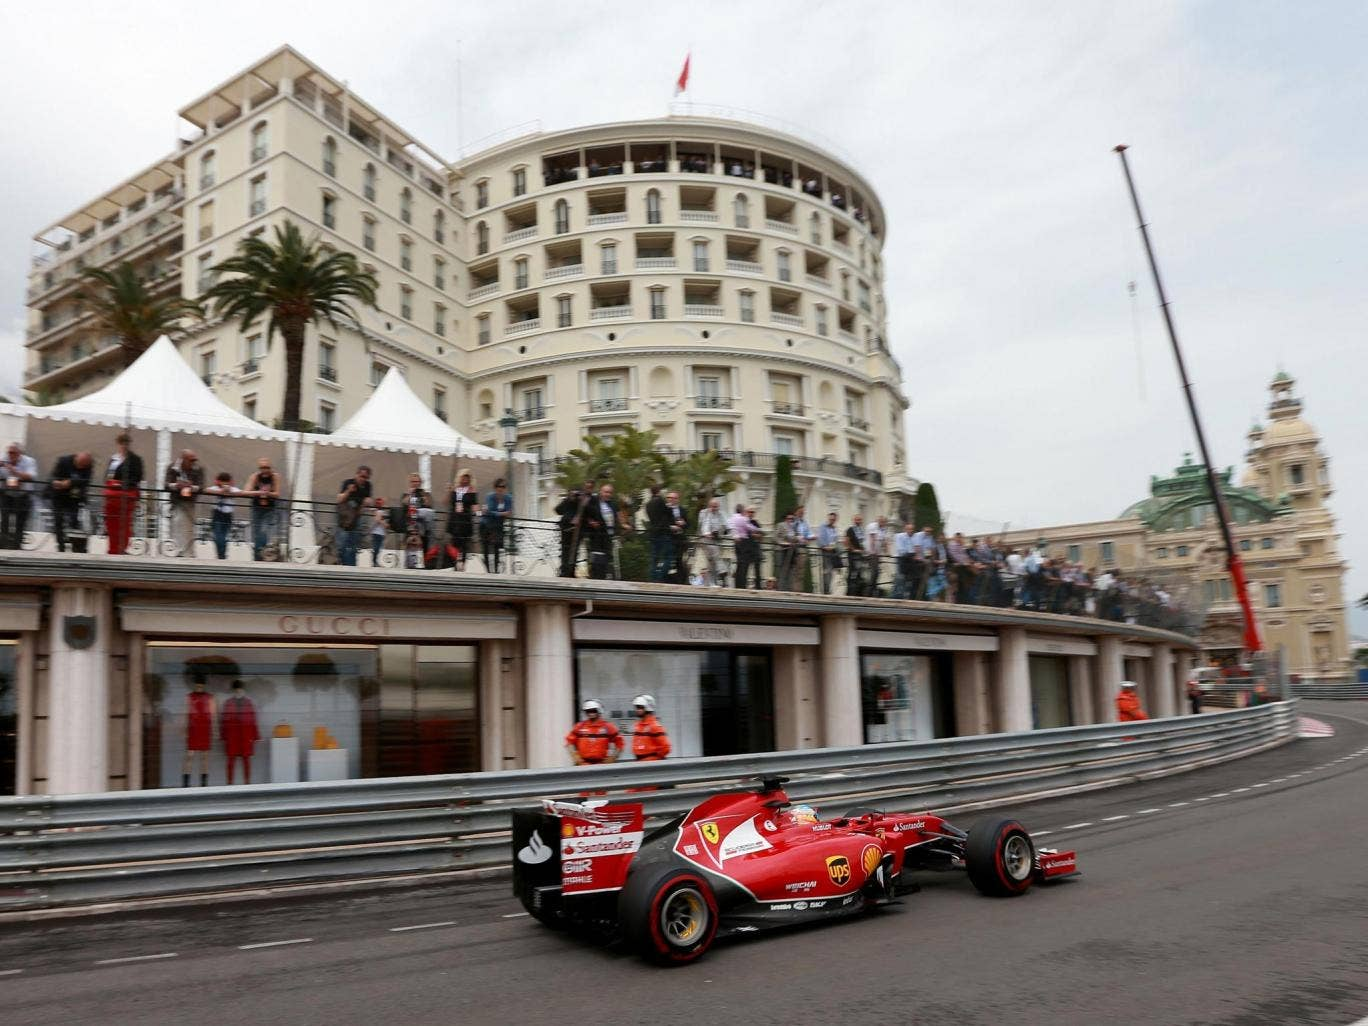 Fernando Alonso set the fastest practice time in Monaco yesterday